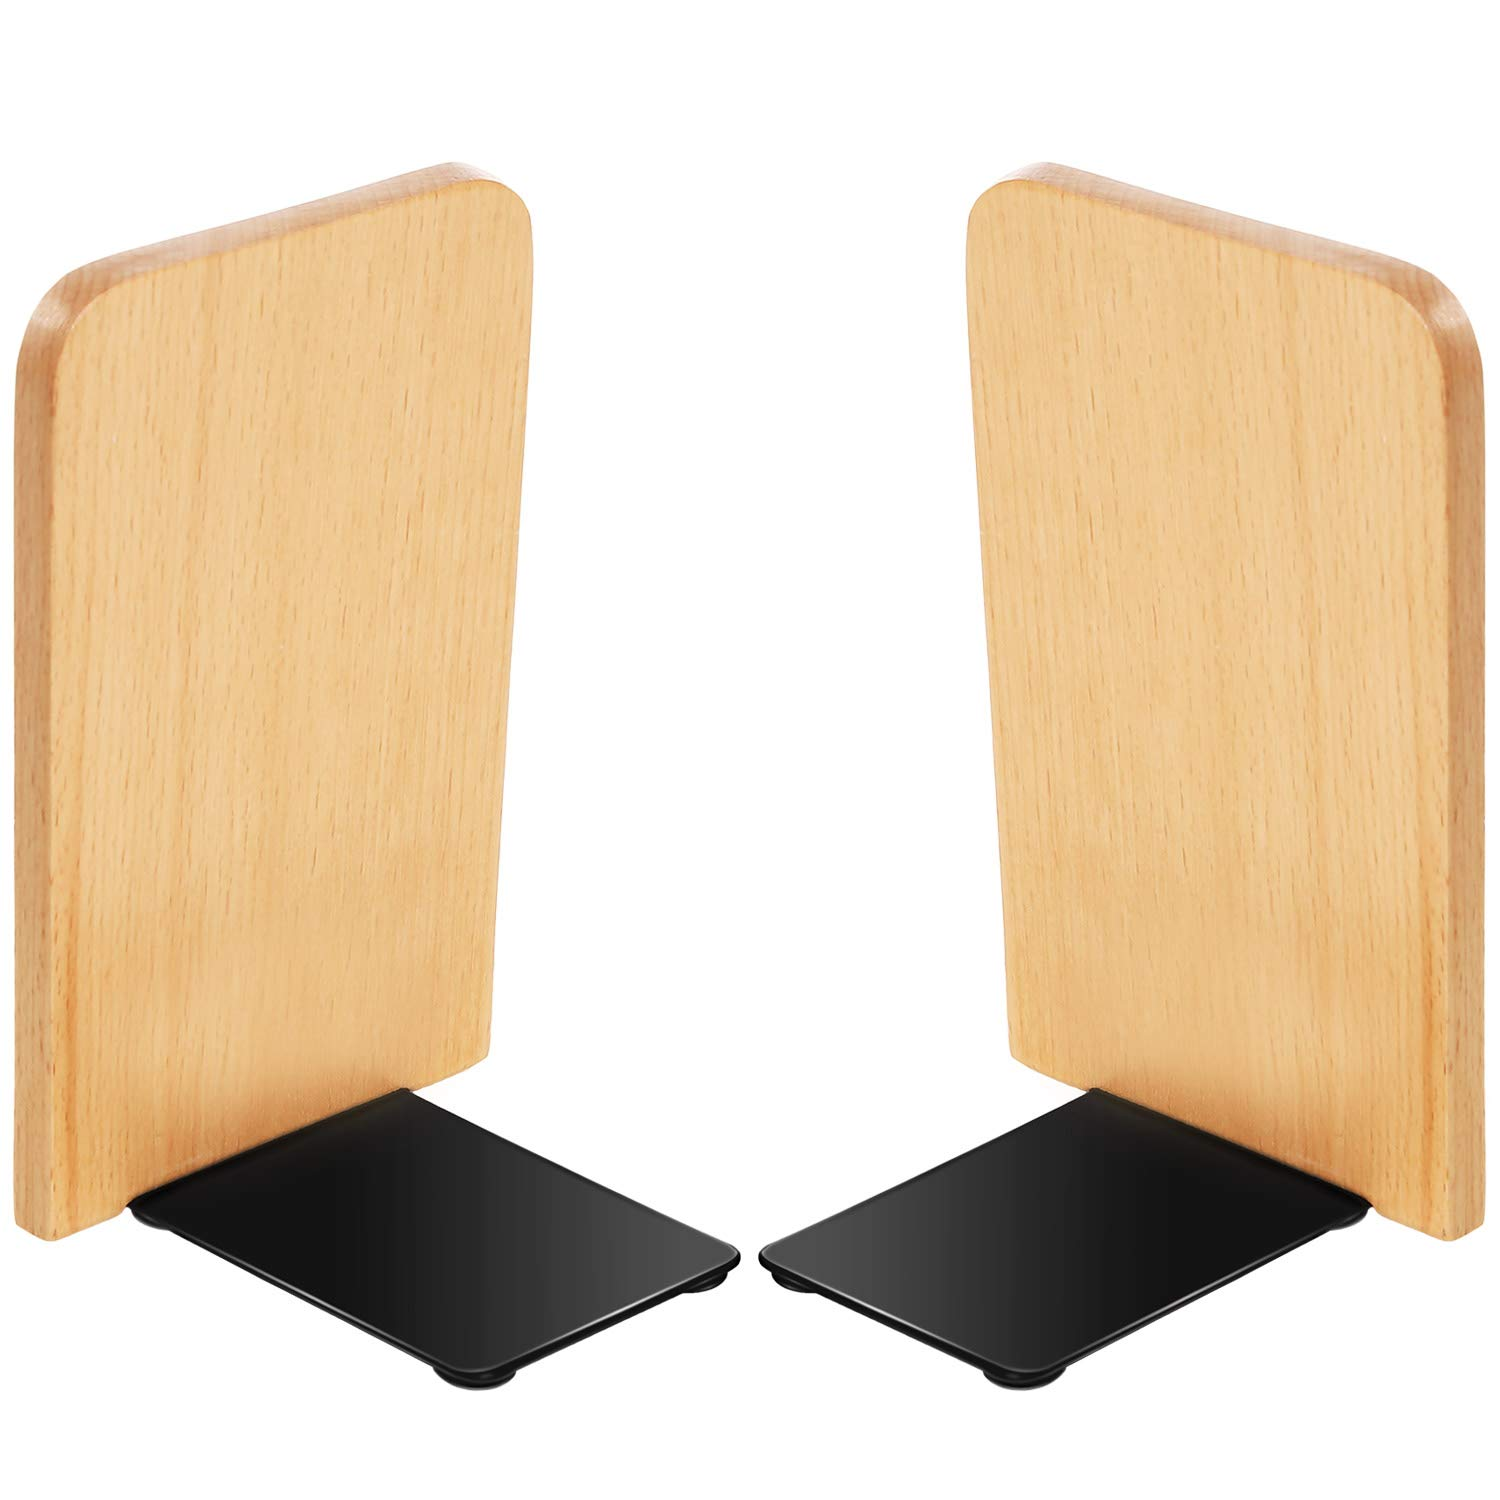 TecUnite Wood Bookends Beech Wood Art Bookends Office Hand Crafted Heavy Wooden Bookend for Book Stand (2)